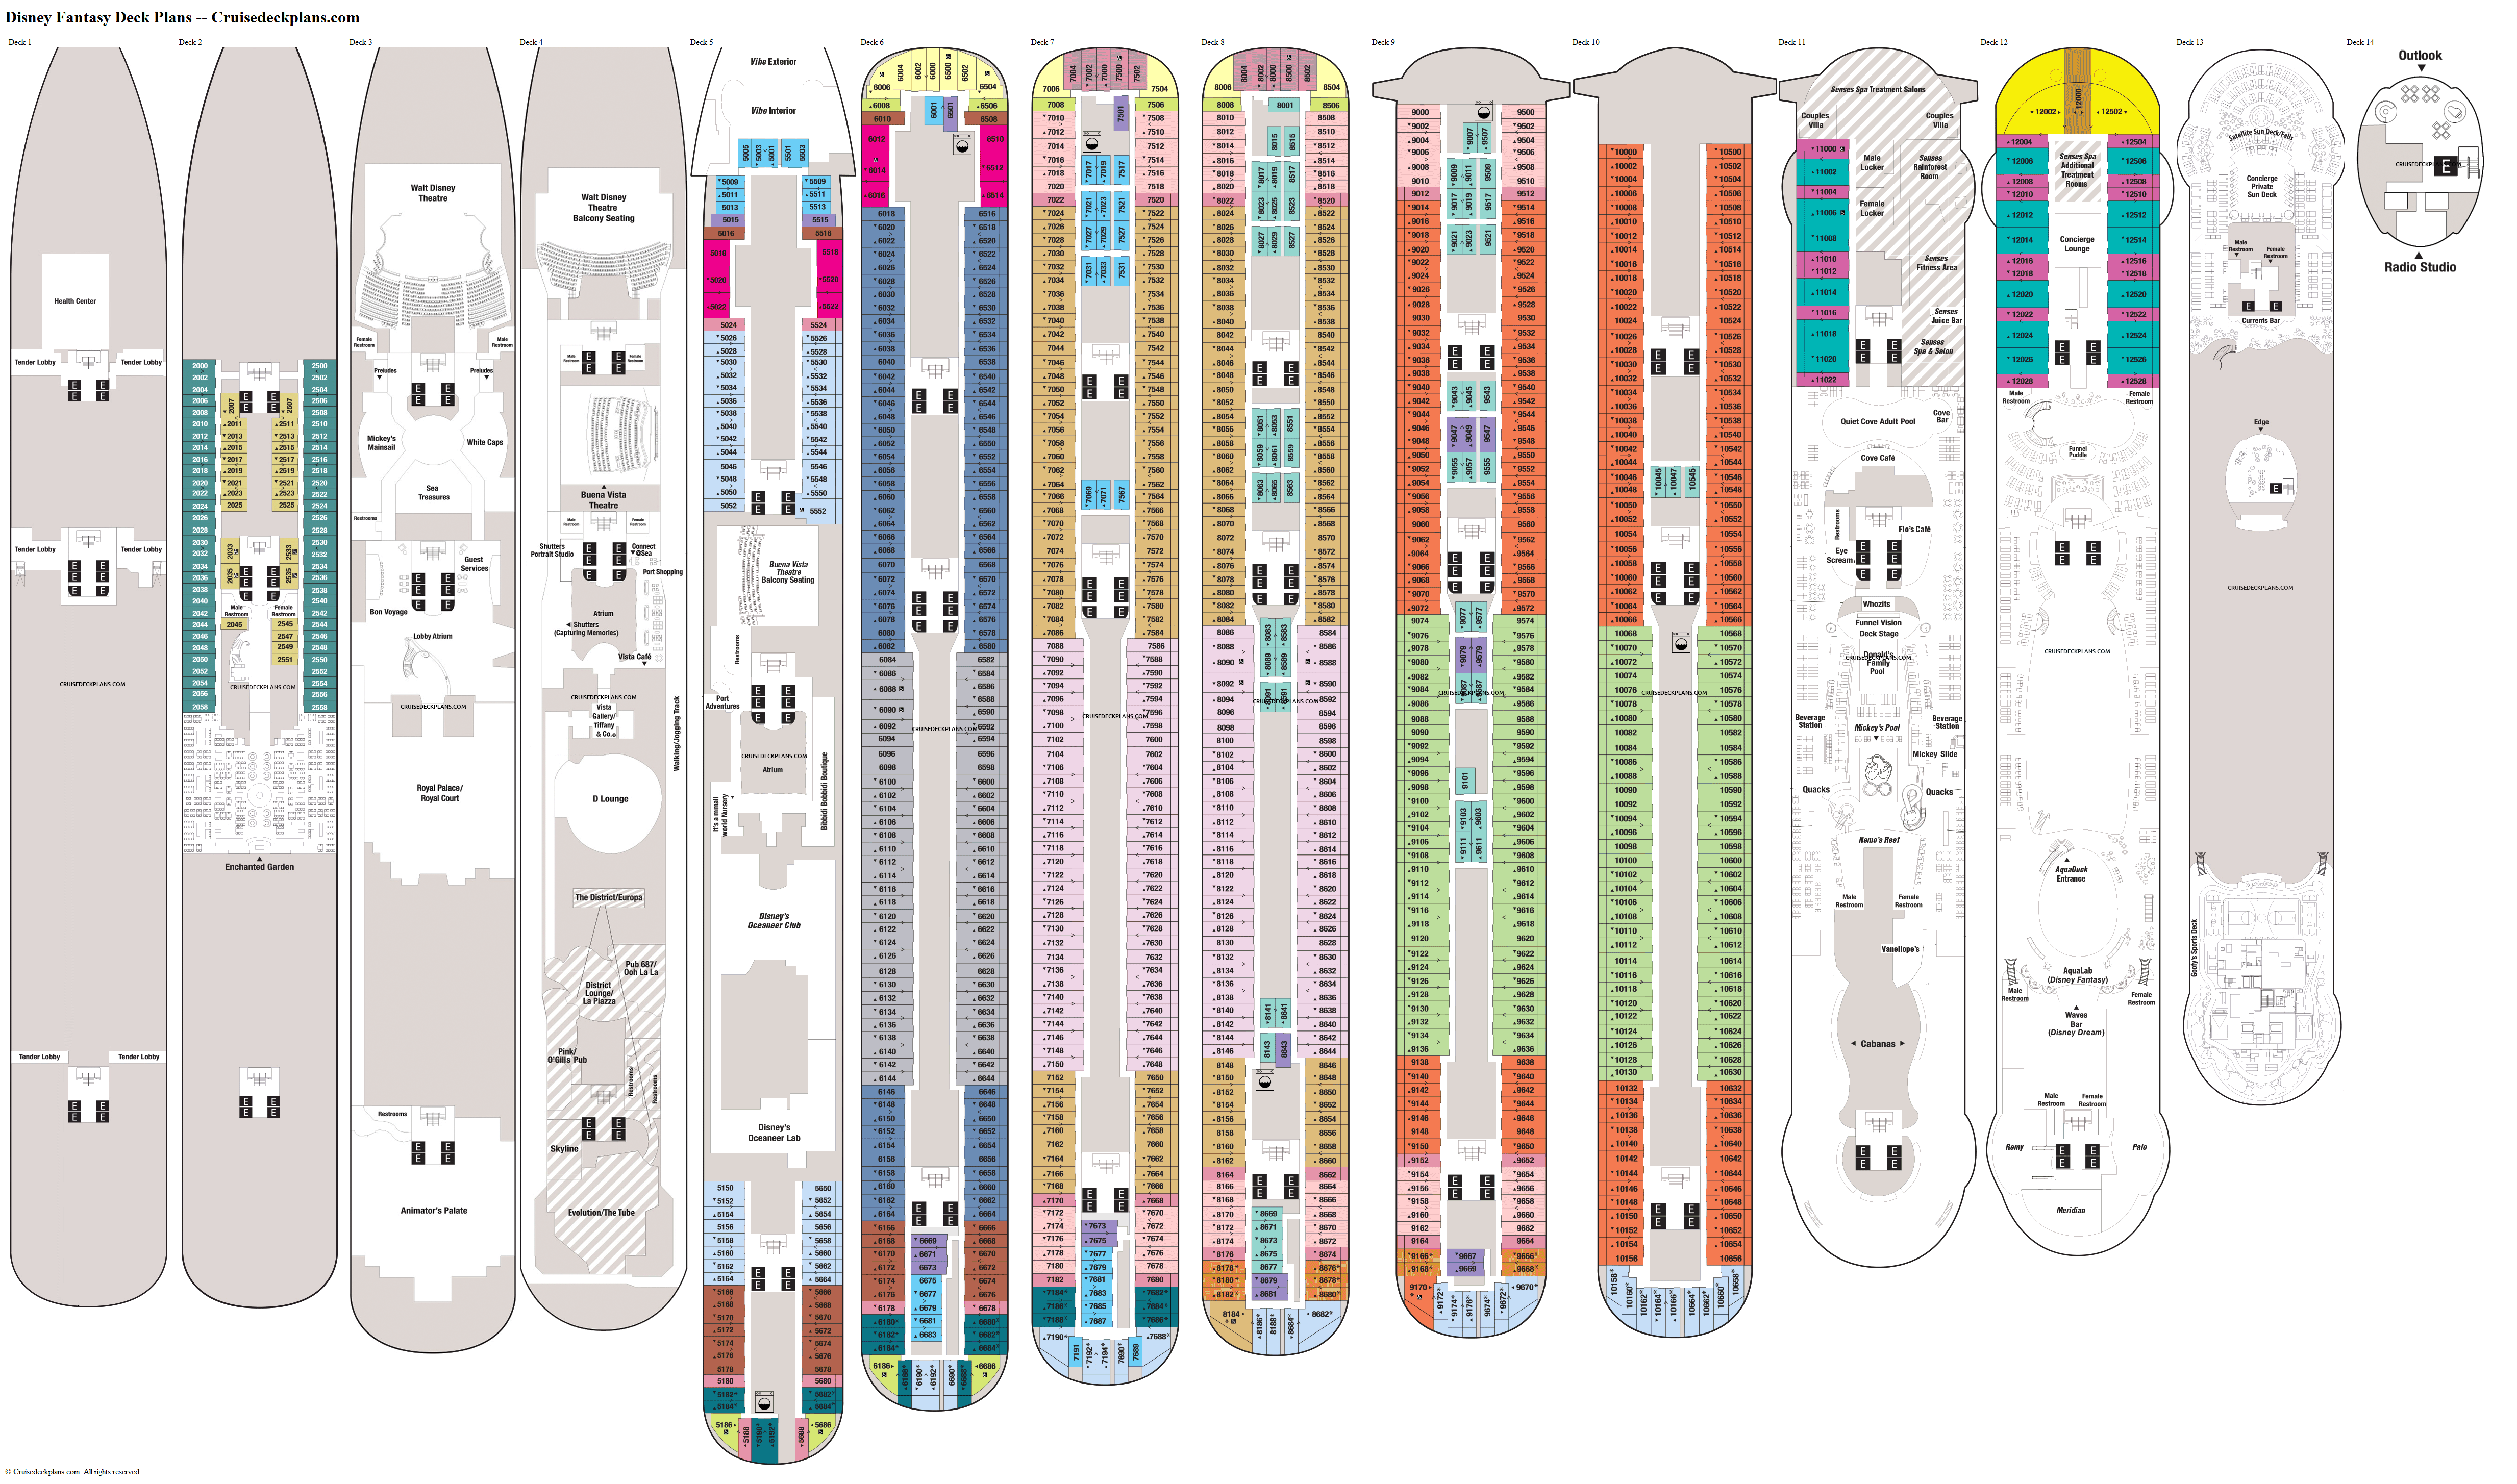 Disney Fantasy deck plans image